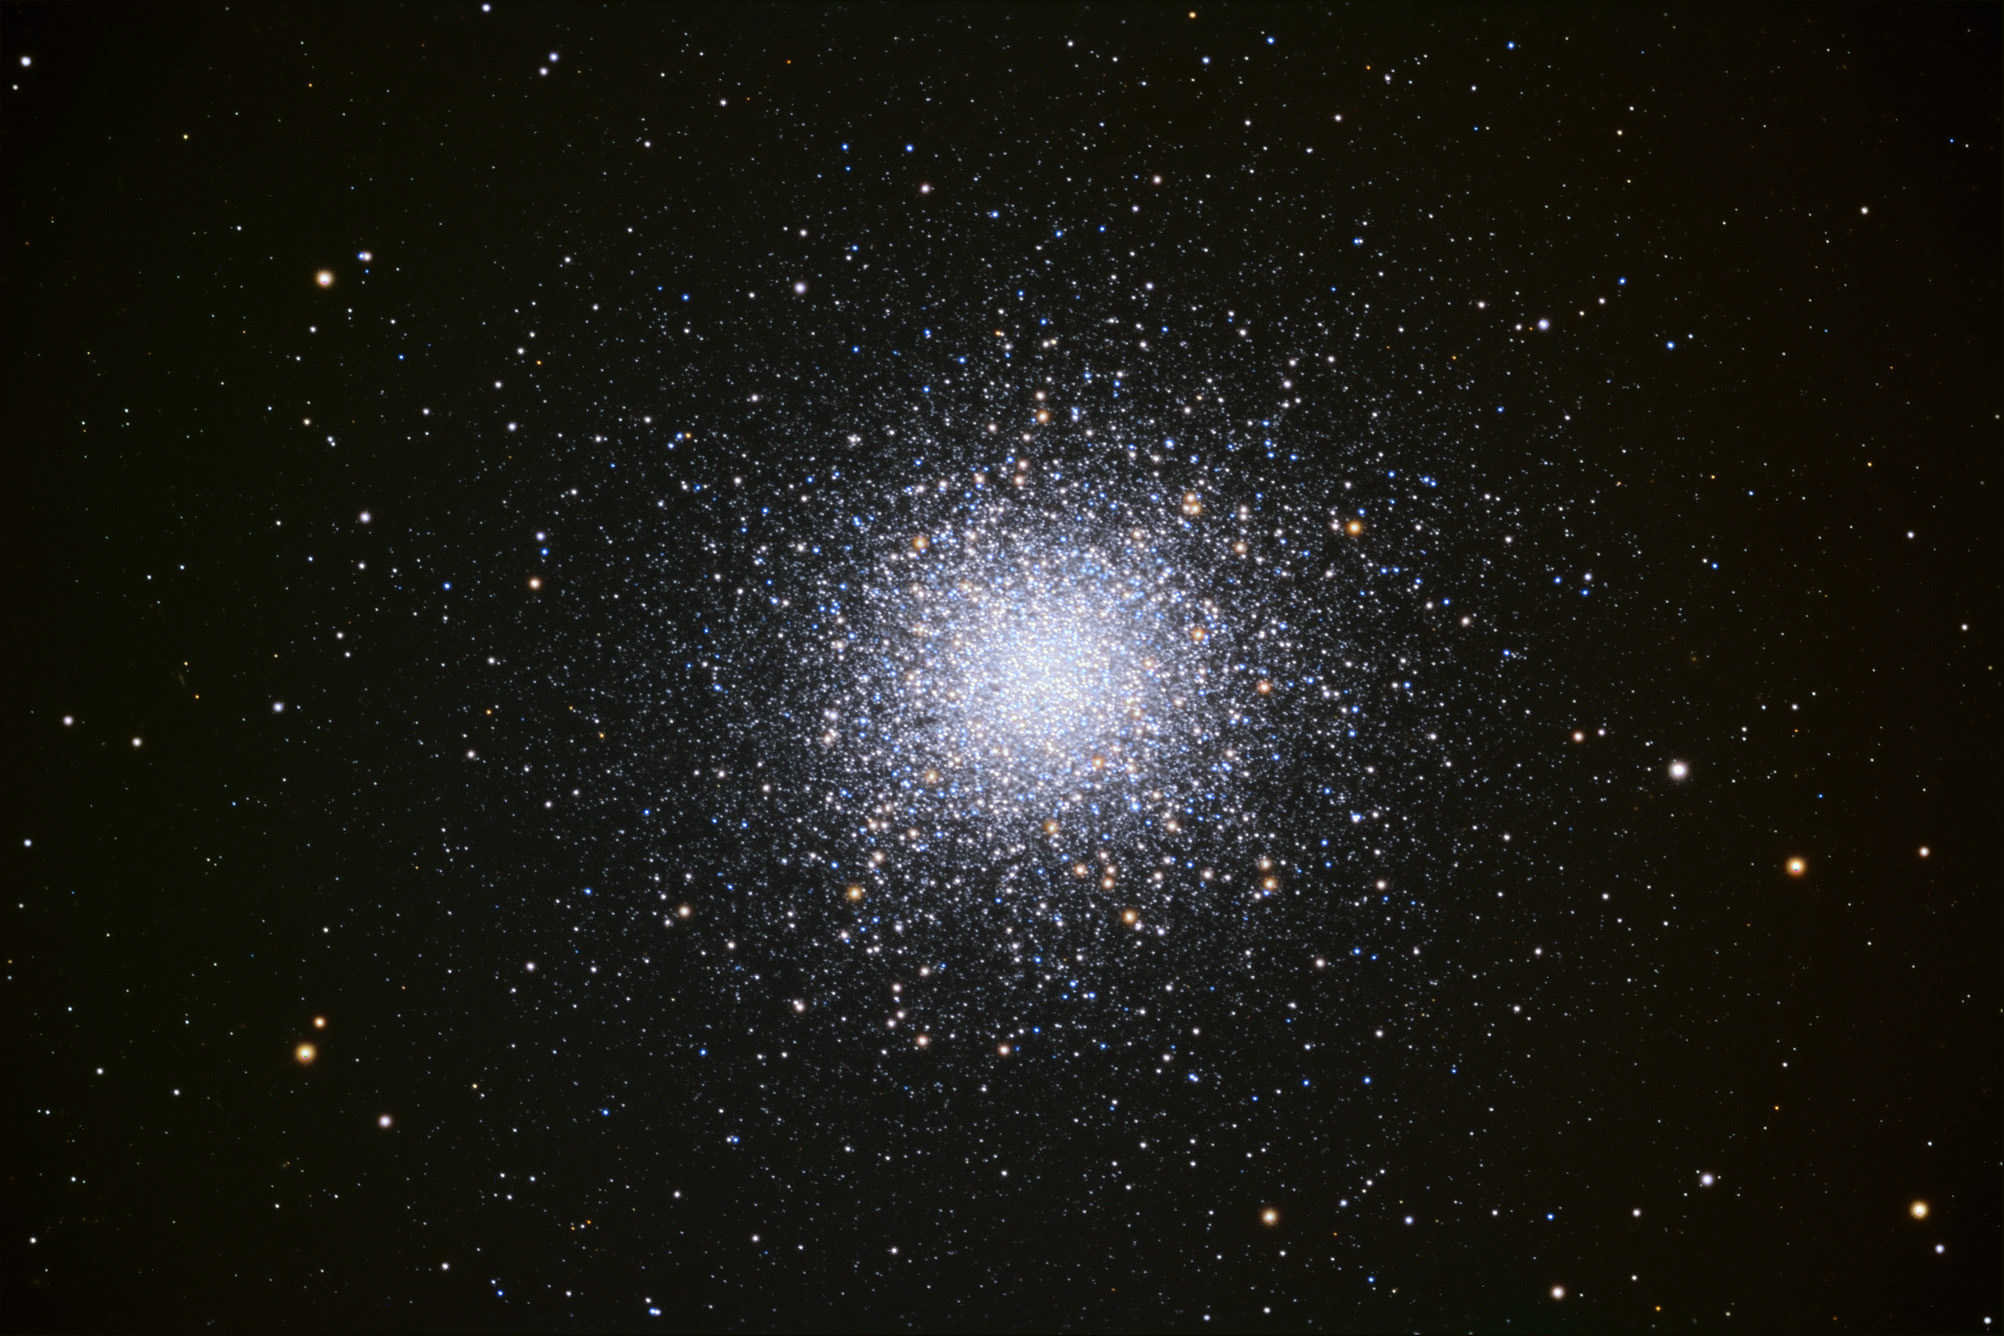 Images of Star Cluster | 2004x1336